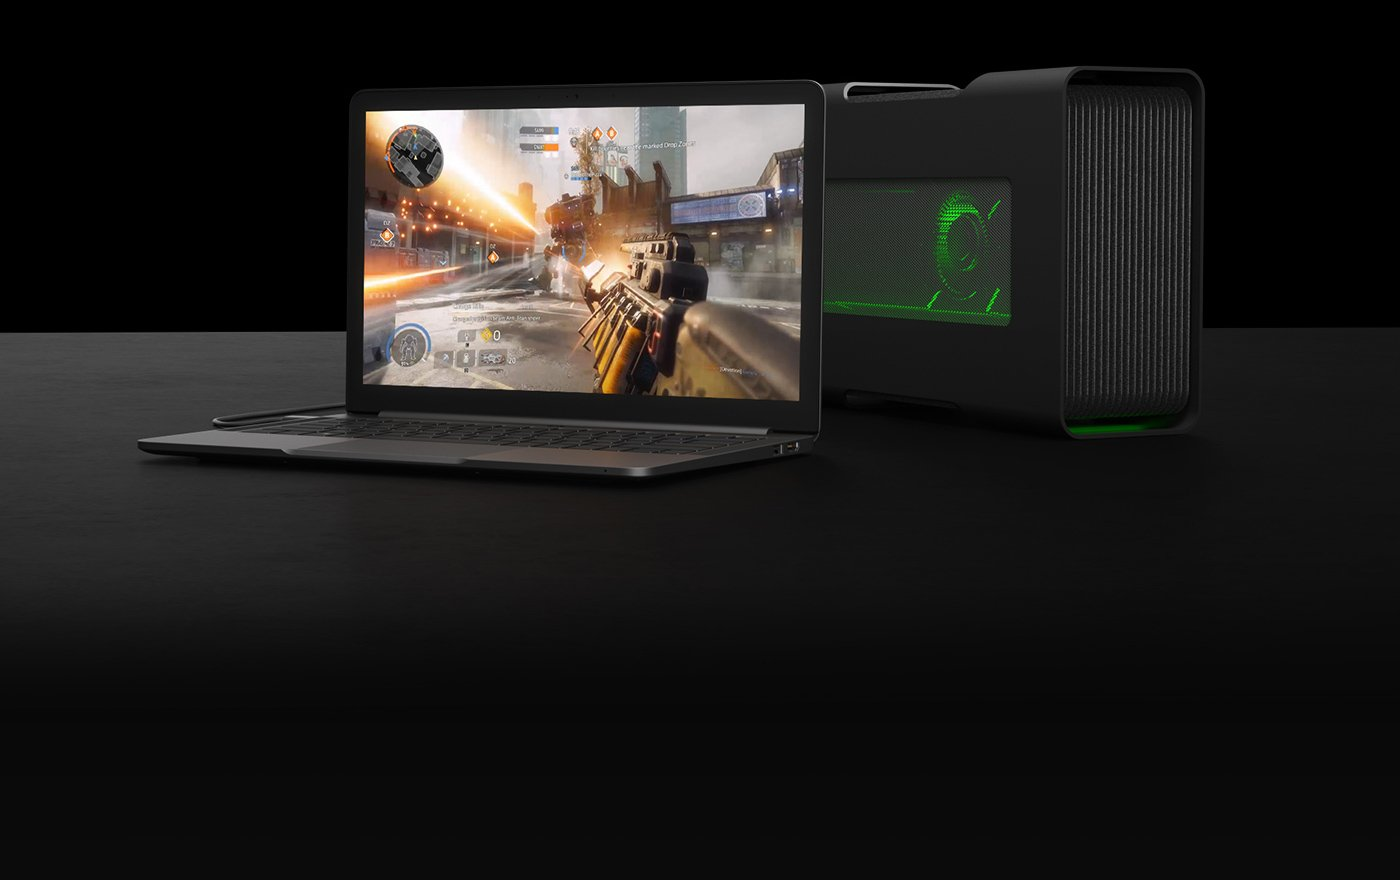 The New Razer Blade Stealth Ultrabook Laptop